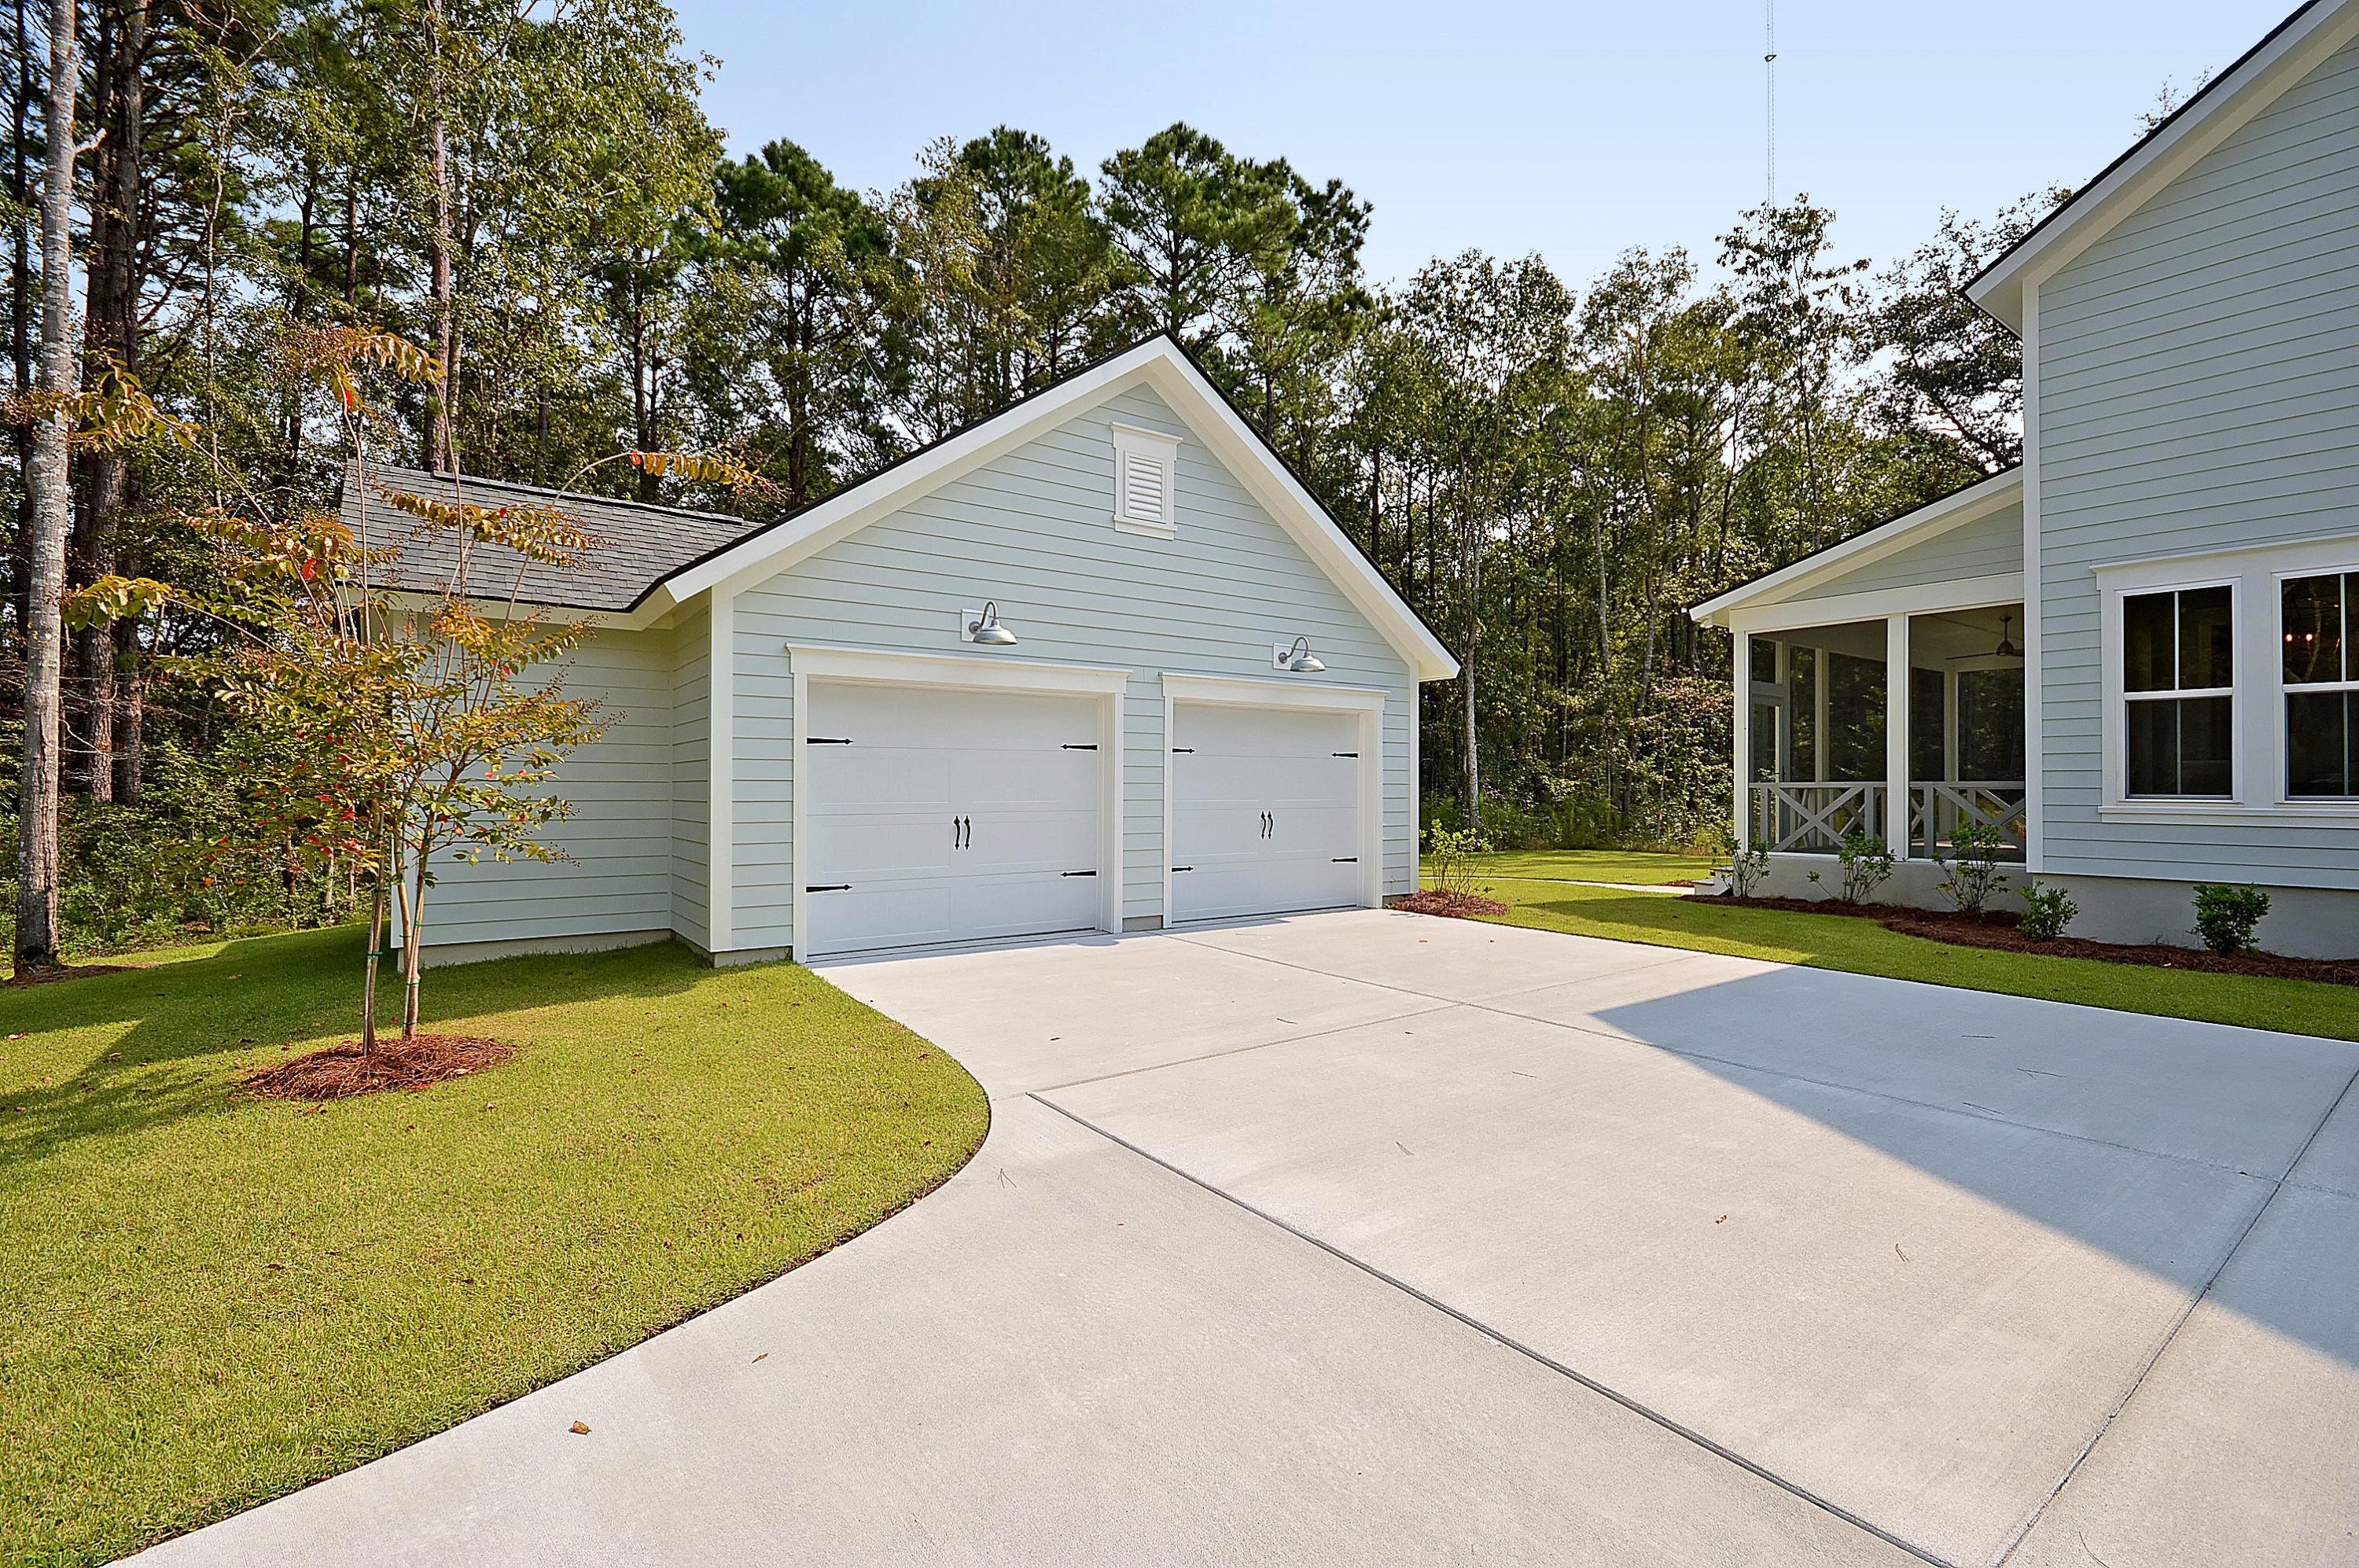 Awendaw Village Homes For Sale - 1134 Reserve, Awendaw, SC - 12